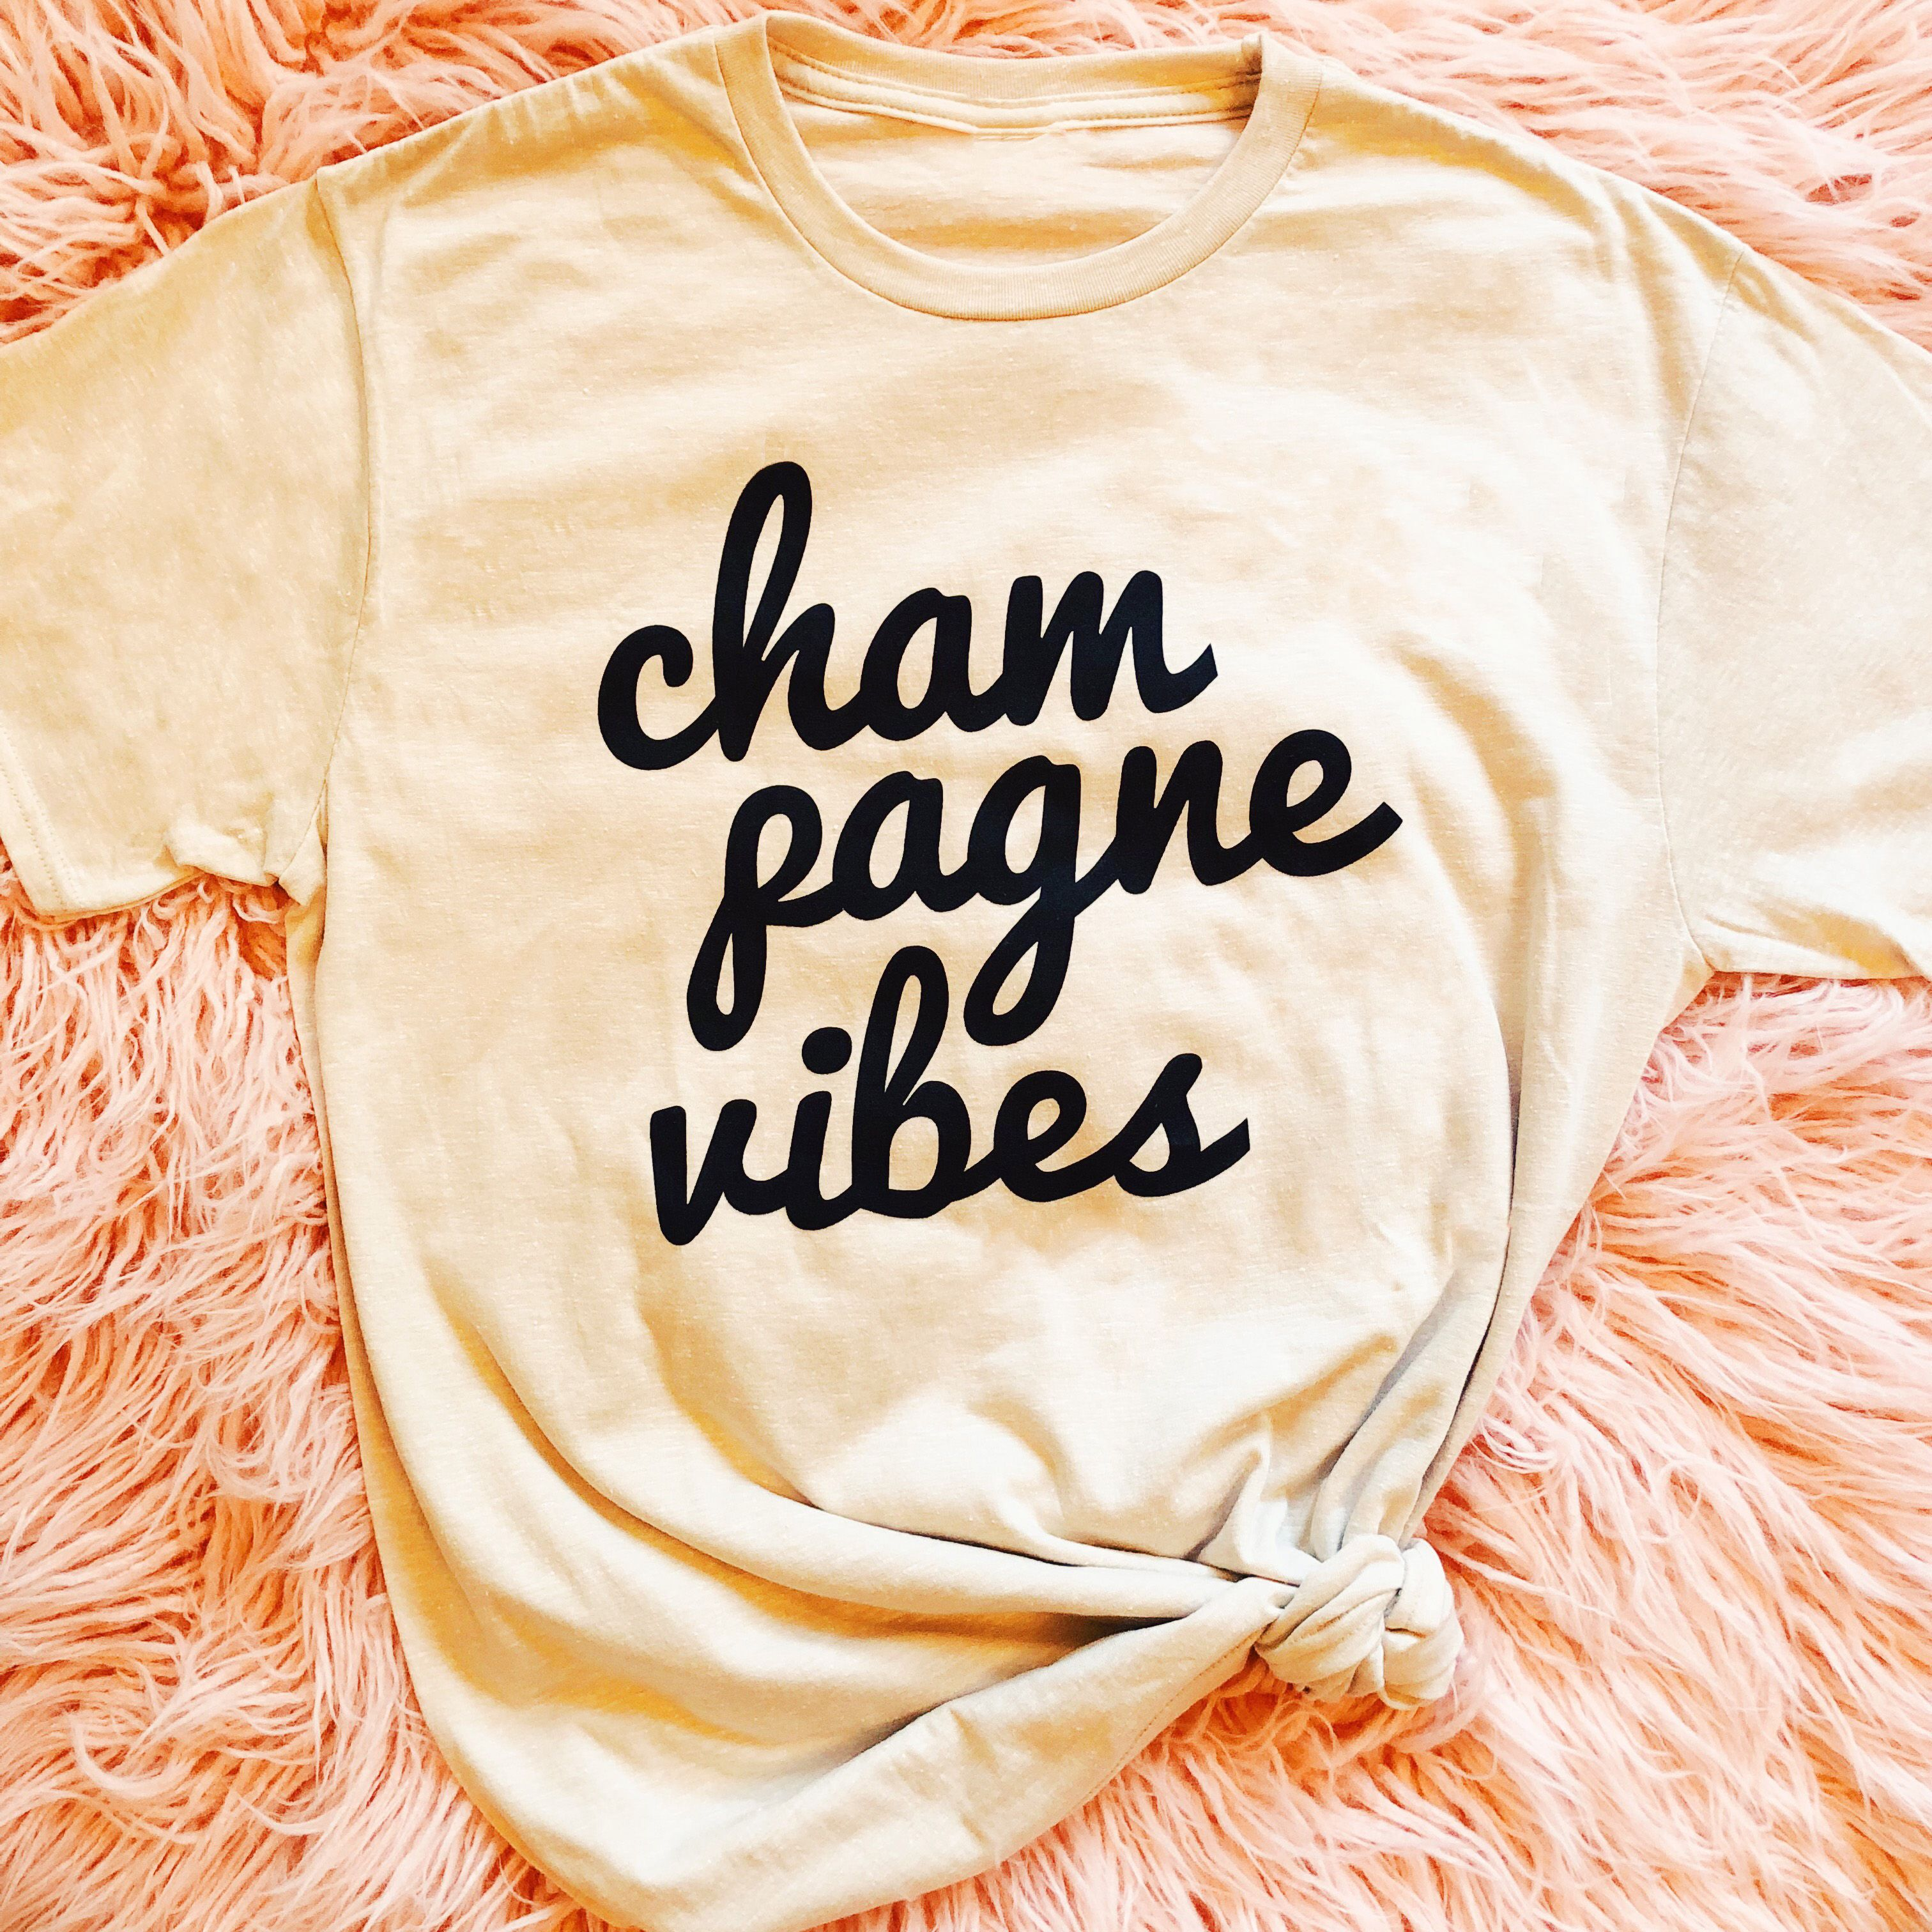 We're all about those champagne vibes. This shirt is perfect for bachelorette parties, getting ready on your wedding or to wear when you brunch it up with your gal pals! Pretty Little Things Collective